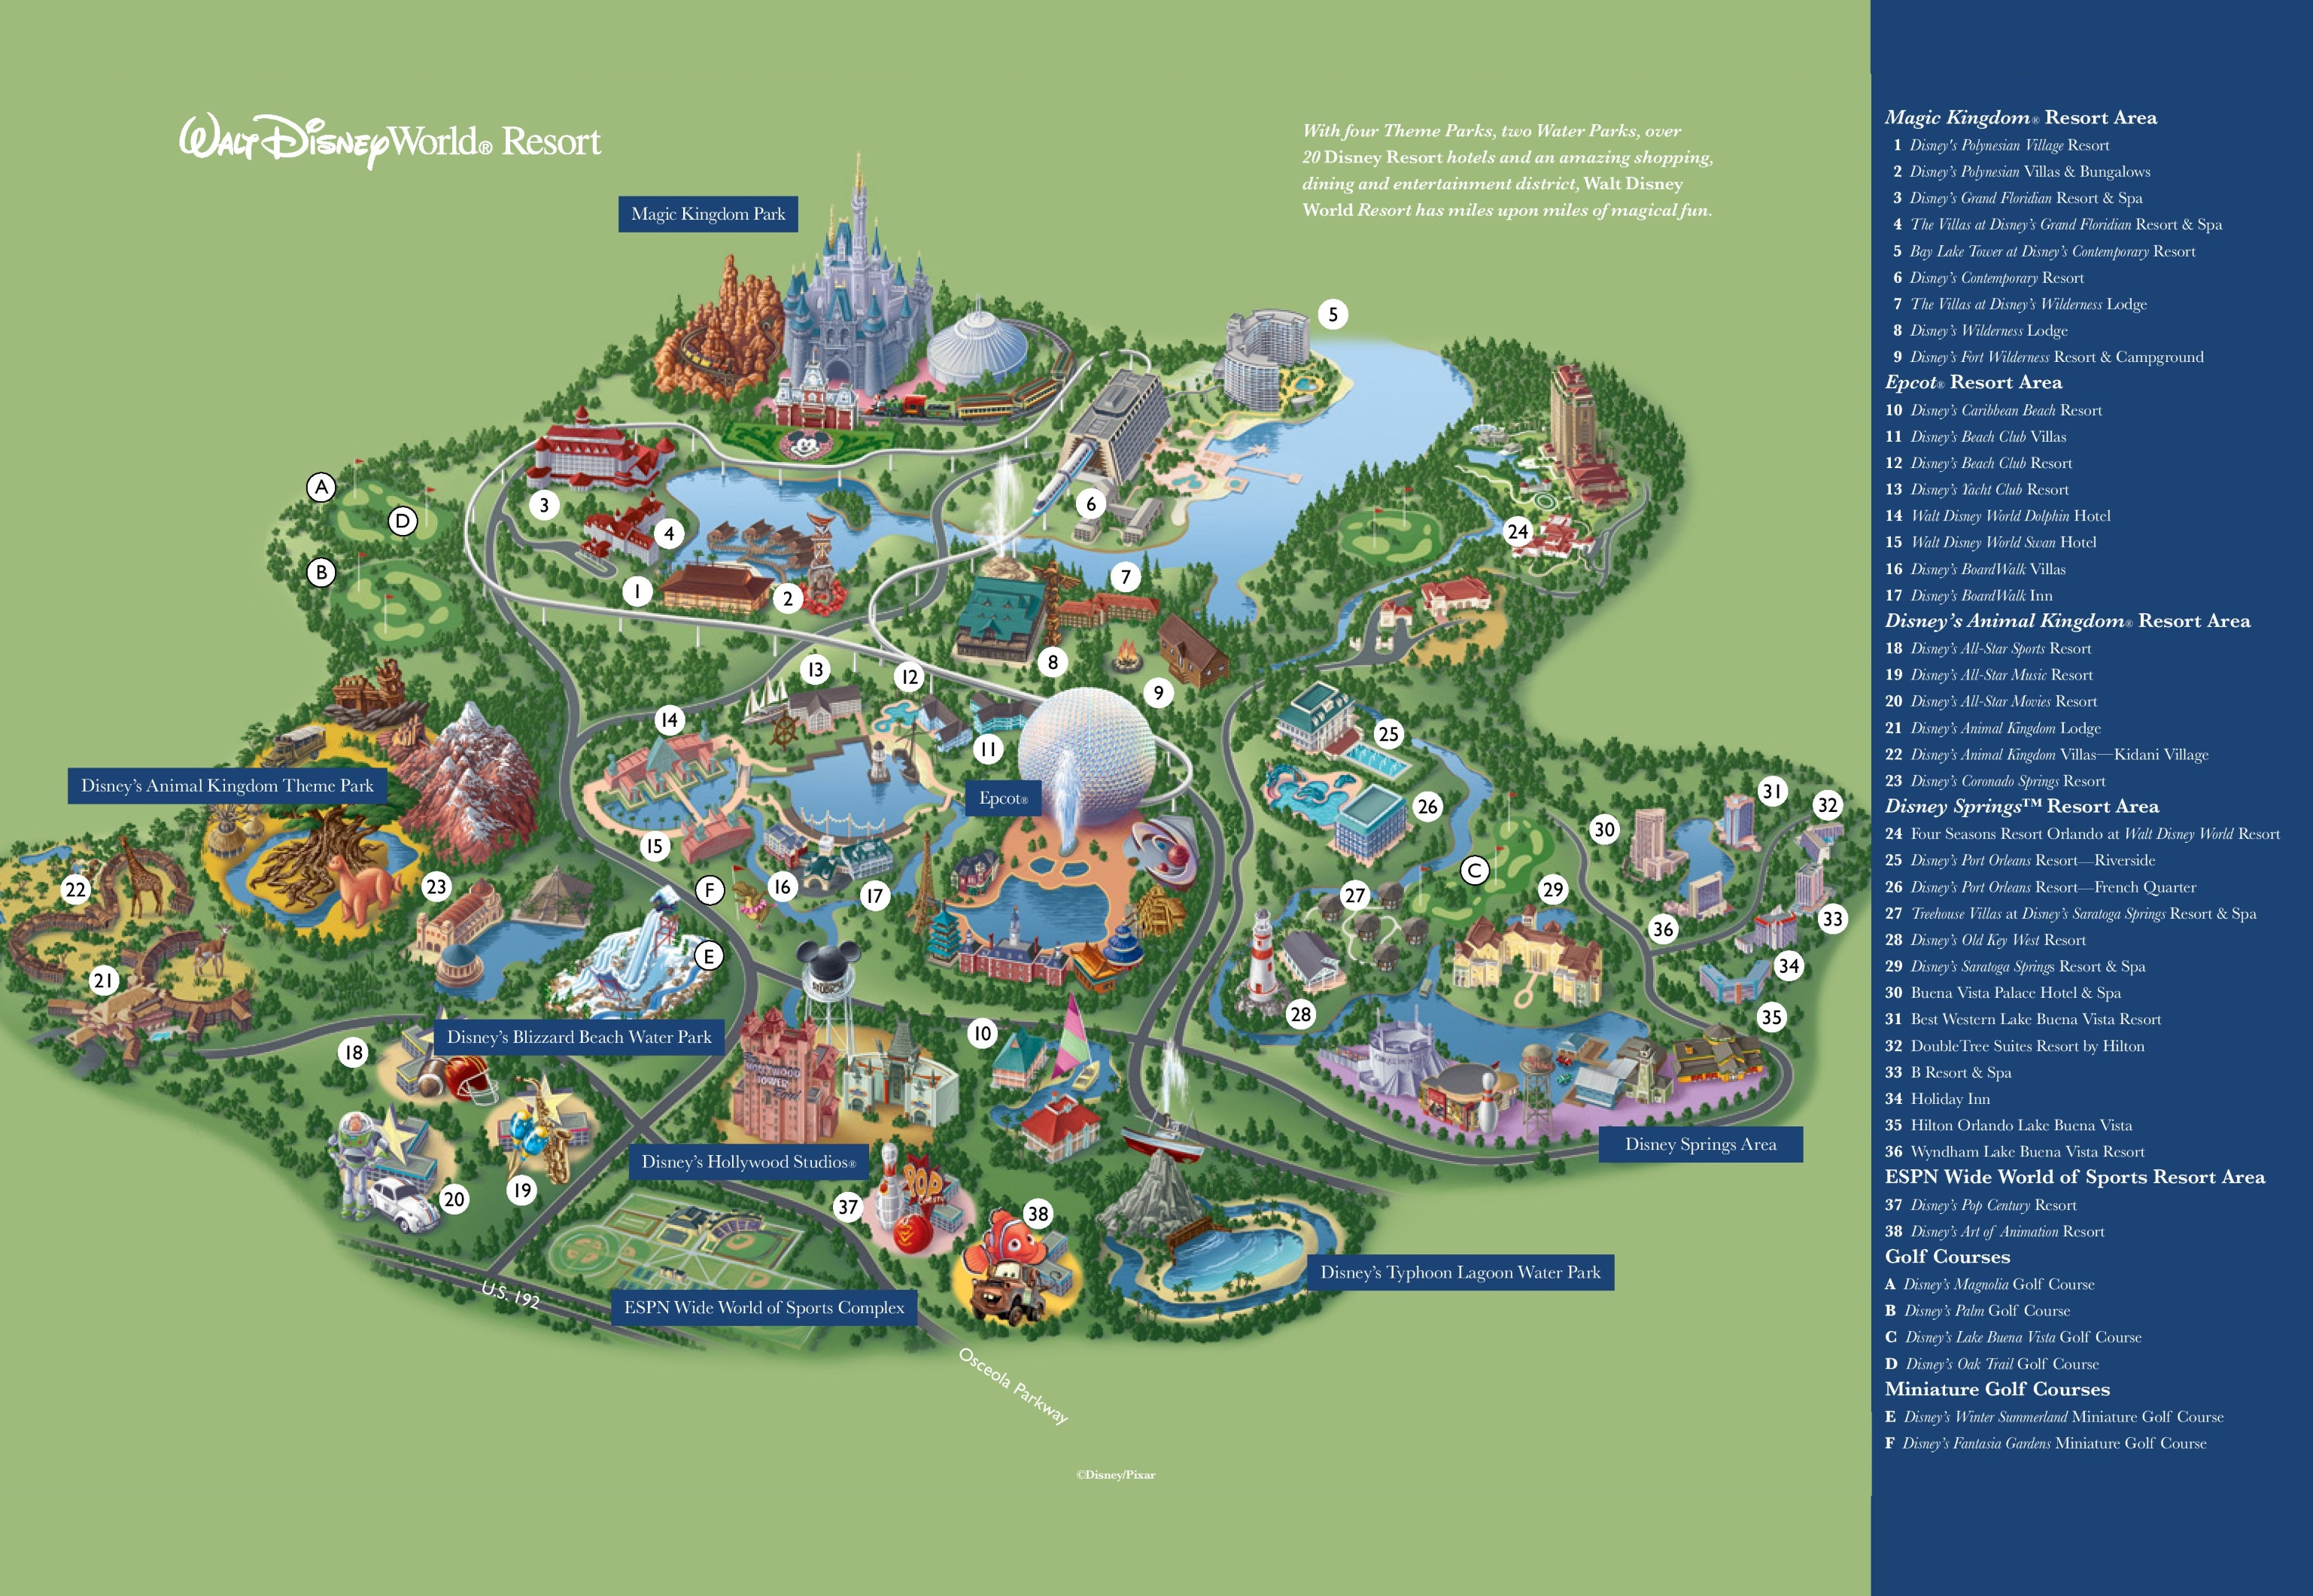 Walt Disney World Resort Map Orlando Walt Disney World Resort map